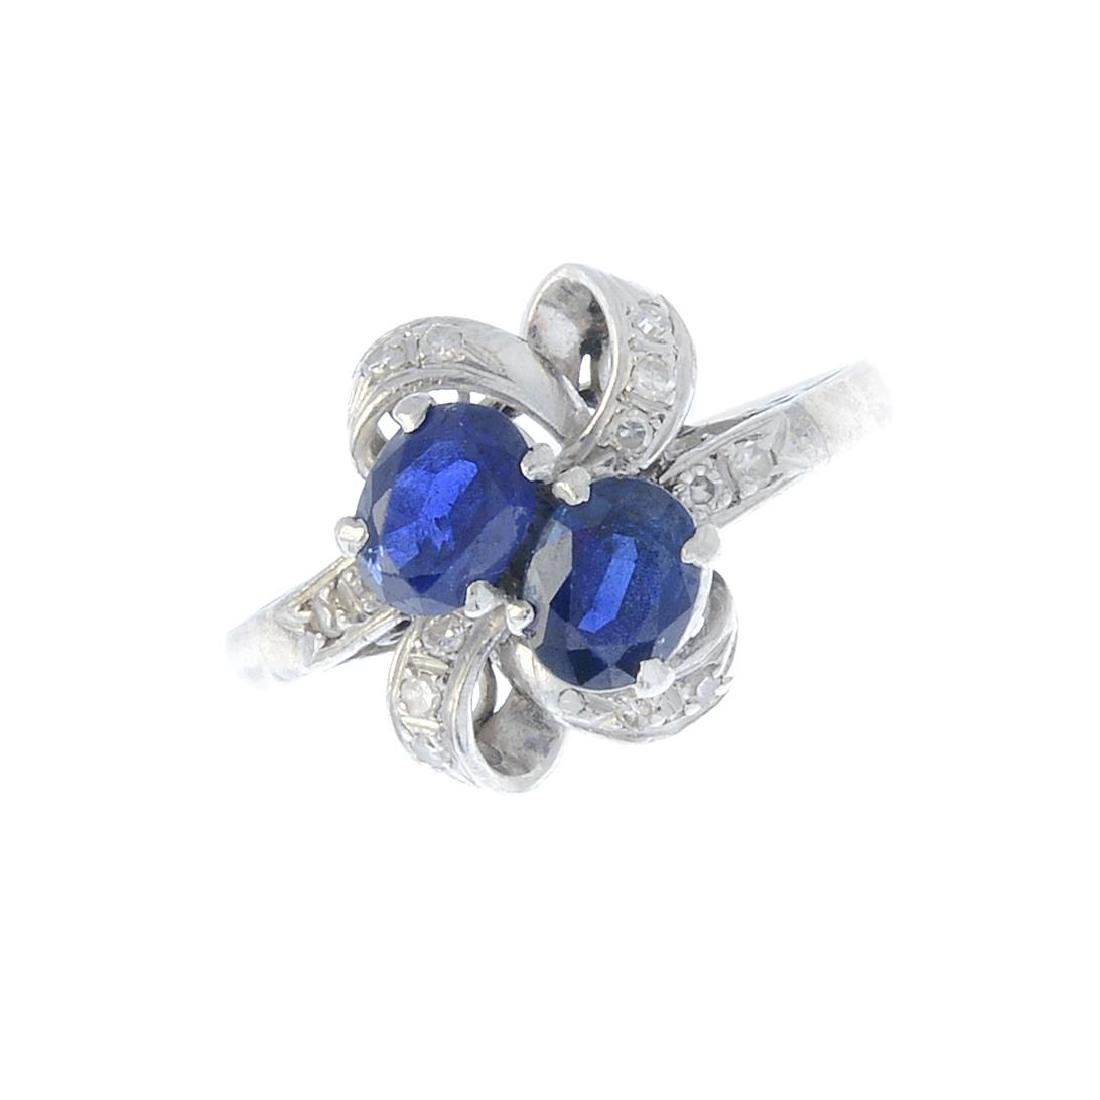 A sapphire and diamond dress ring. Designed as an